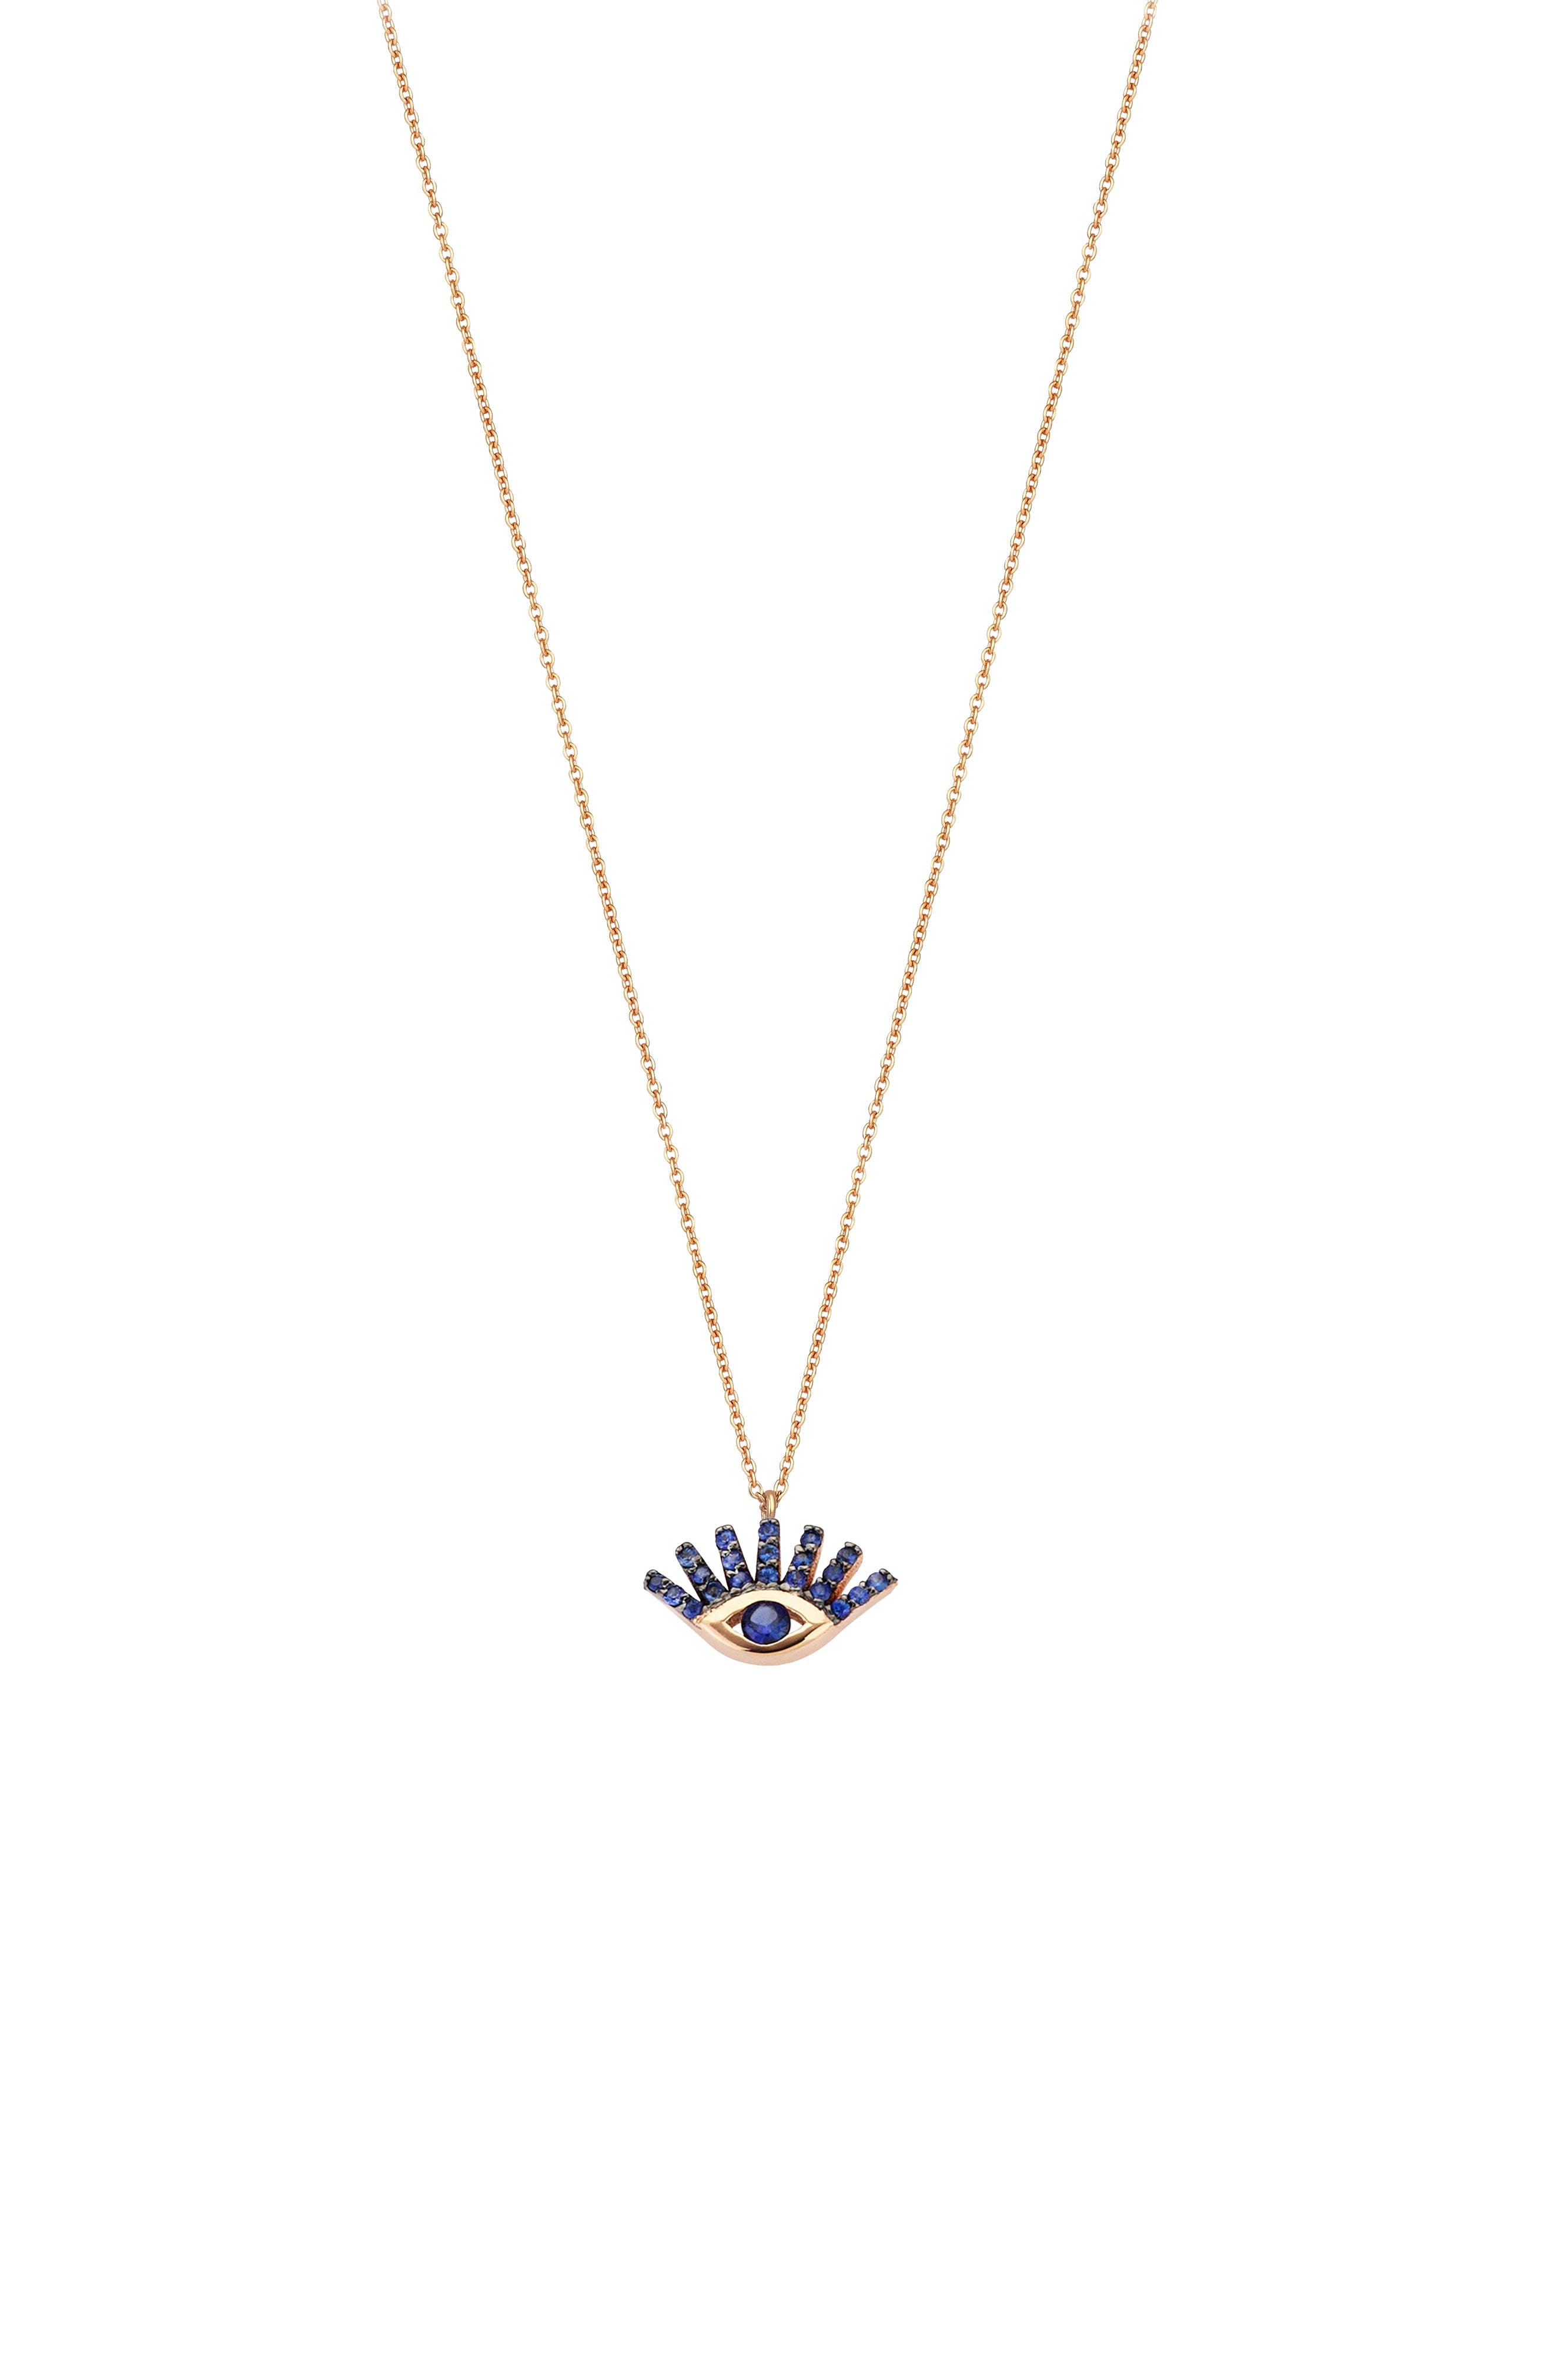 Main Image - Kismet by Milka Sapphire Pendant Necklace